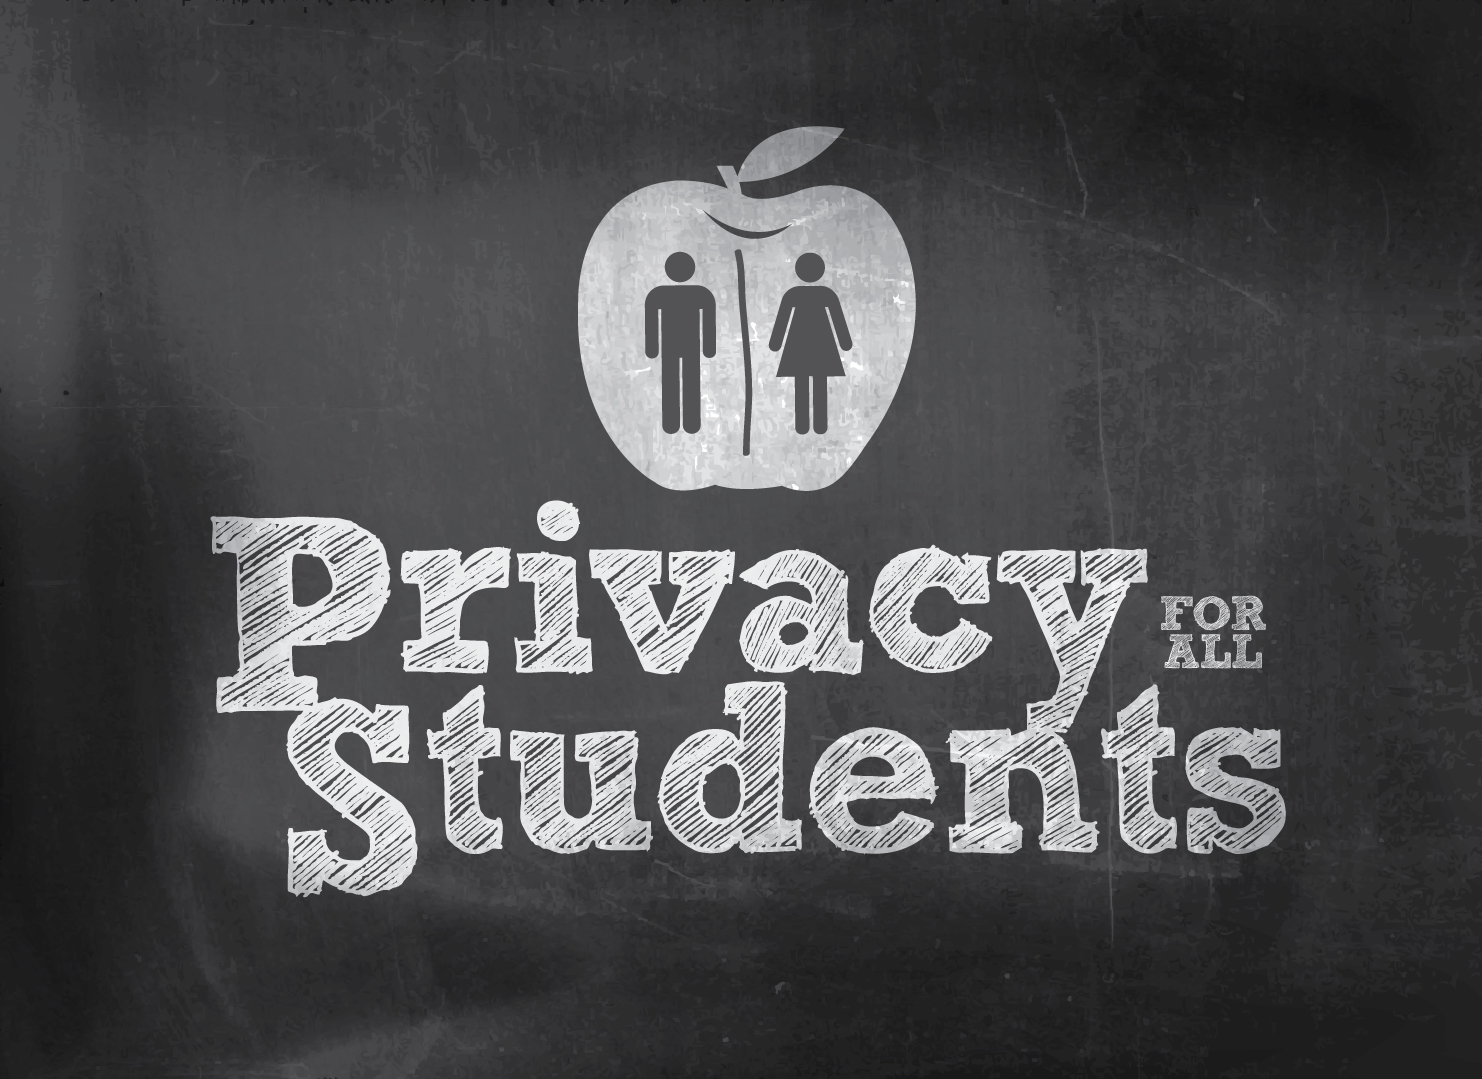 Image result for Images for privacy in schools